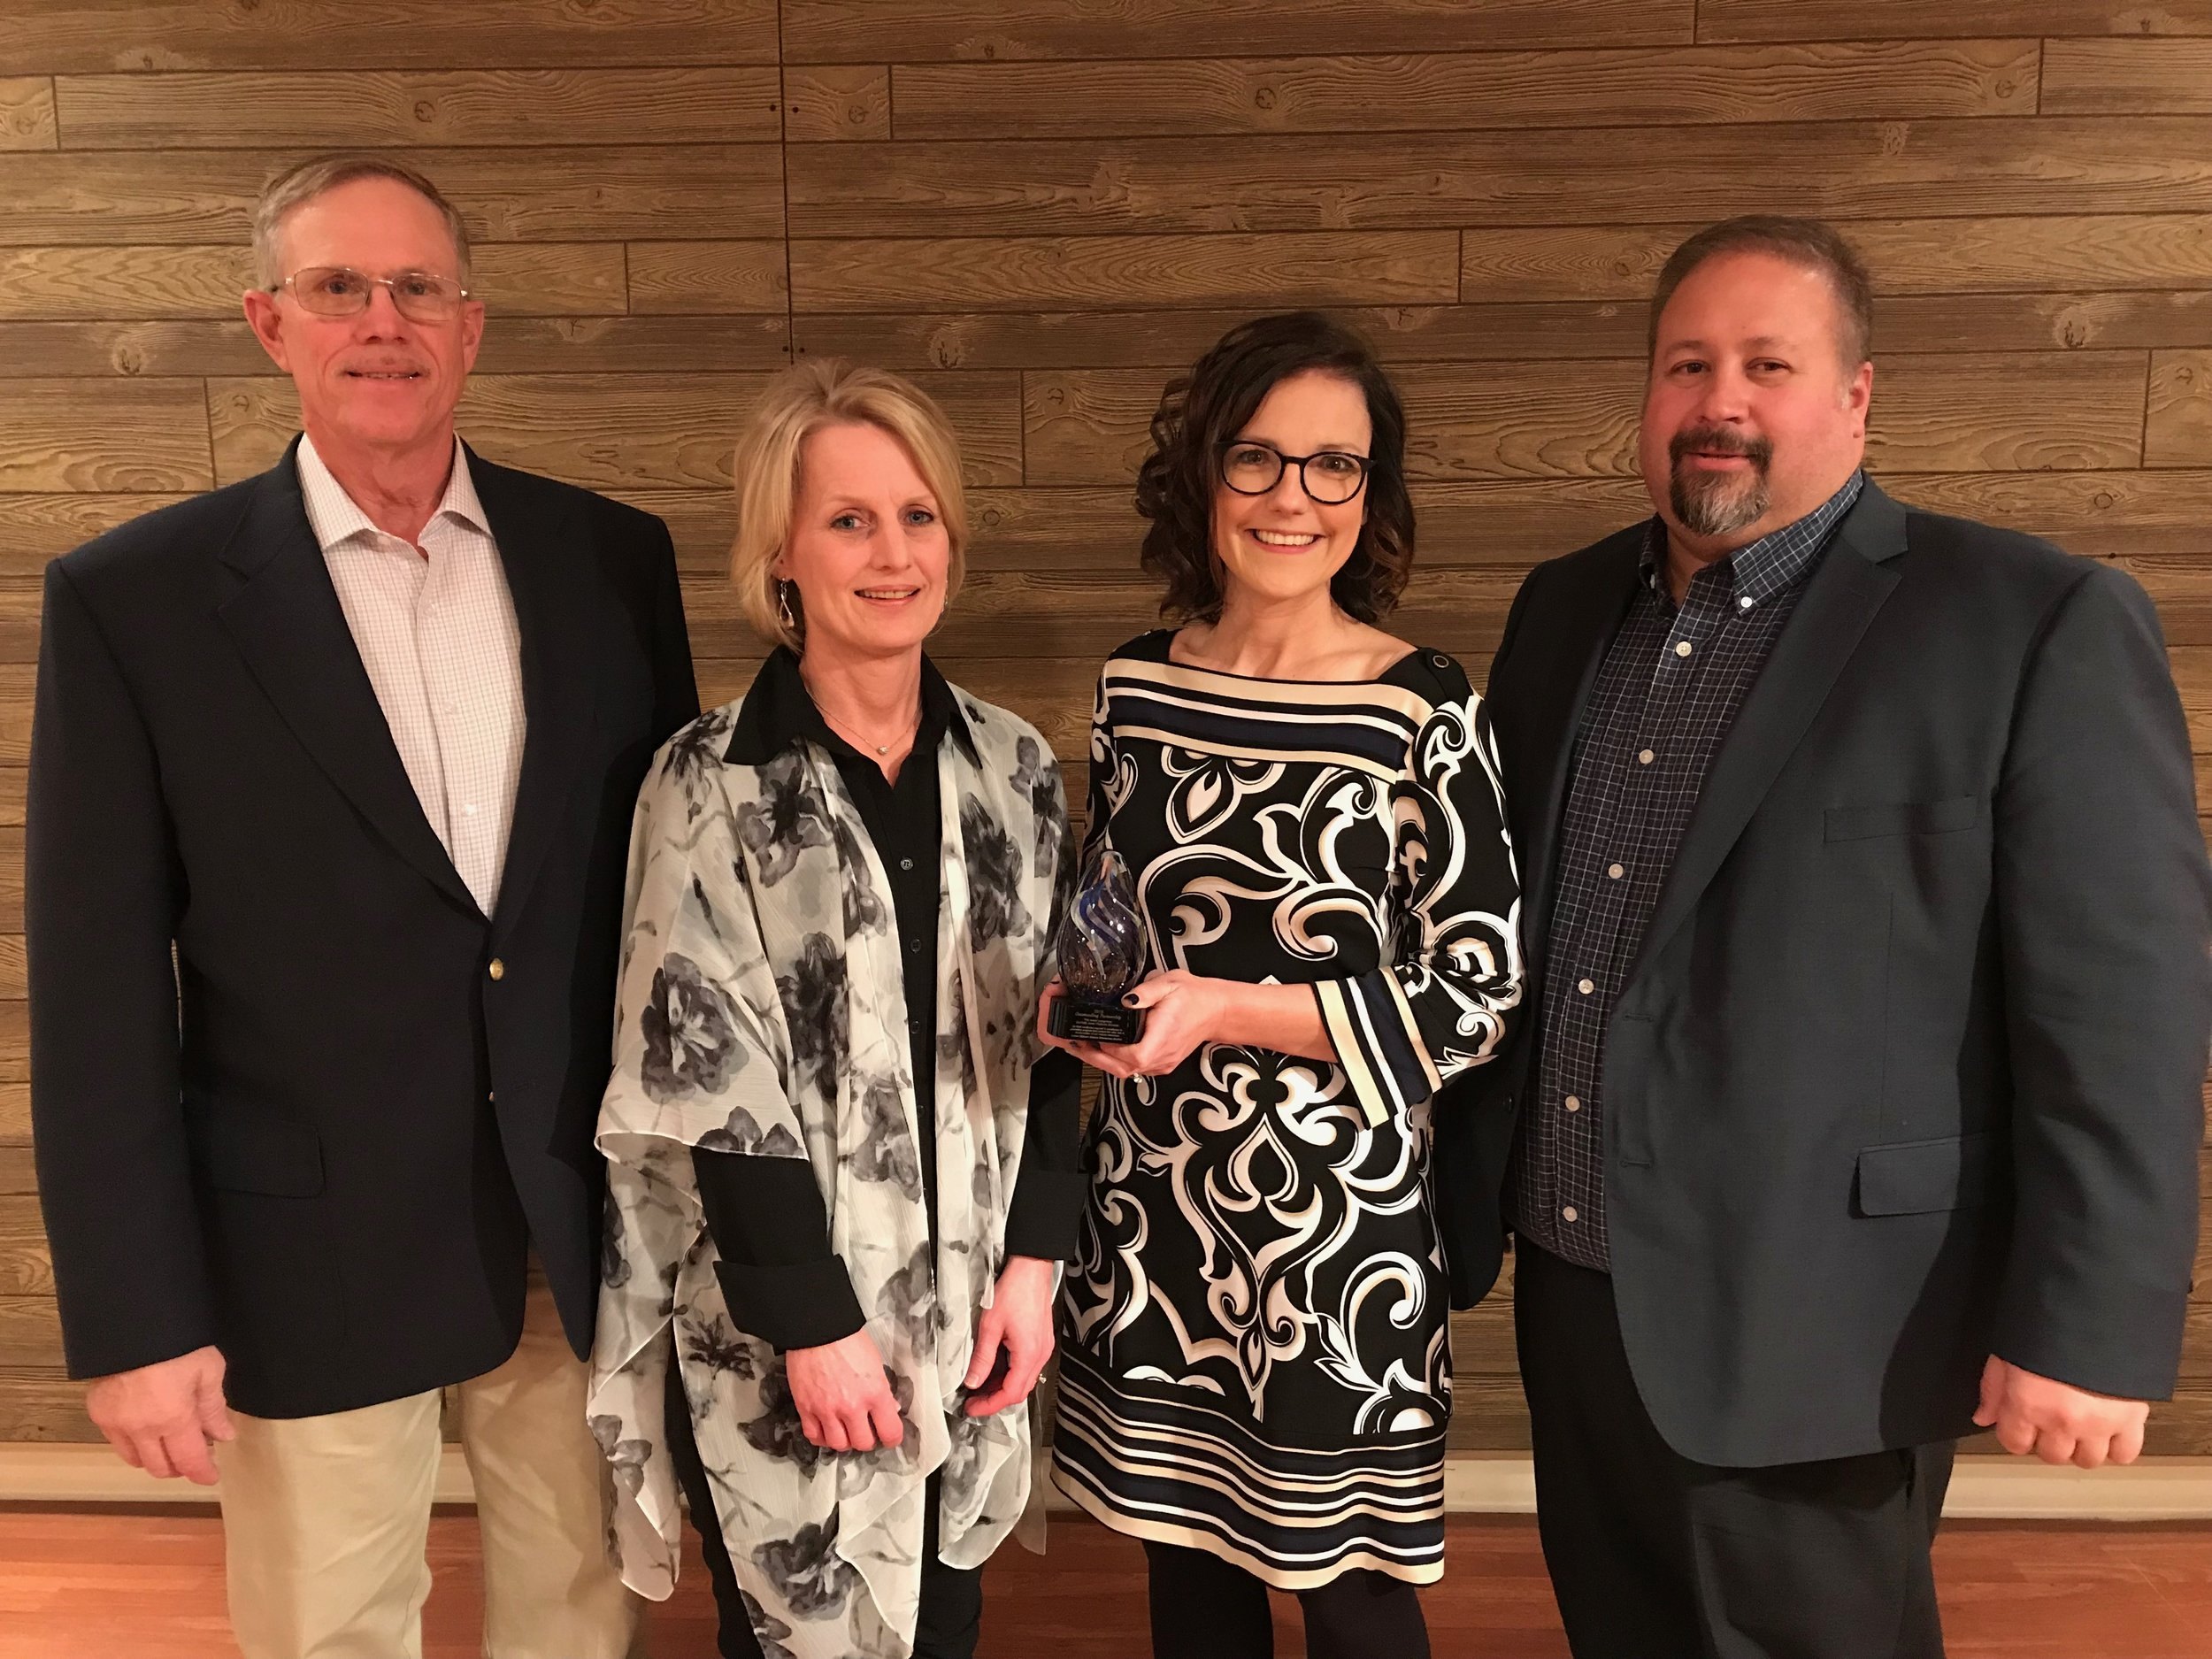 (Photo – from left to right: LENRD Board Chairman, Dennis Schultz; Marketing Coordinator, Stacie Wilken; Executive Director, Traci Jeffrey; and LENRD General Manager, Mike Sousek).